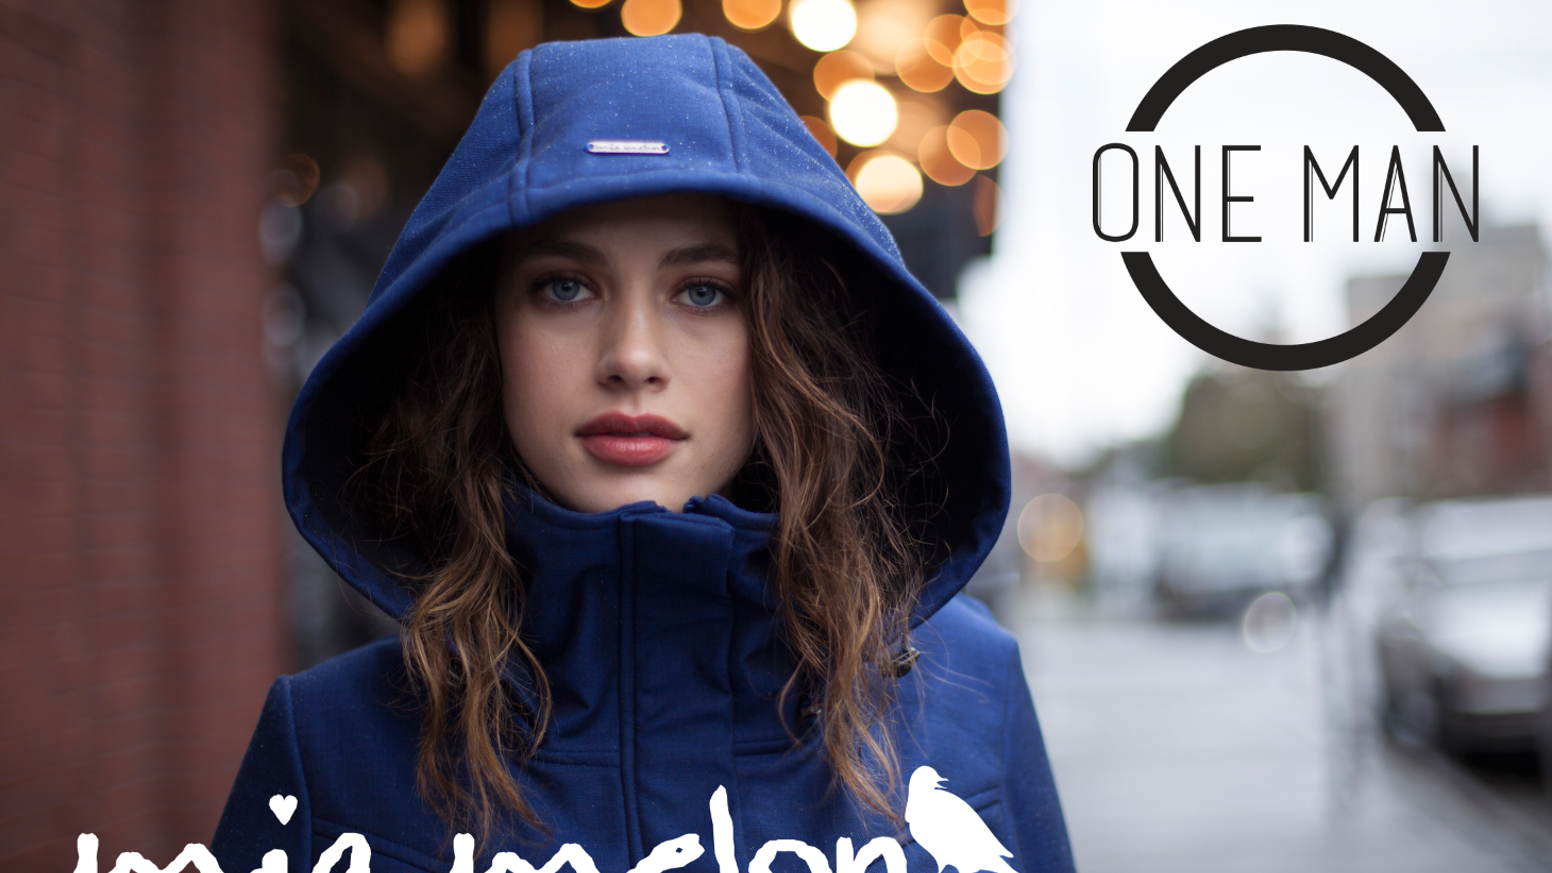 Come check out our NEW campaign! STYLE SHELLS-weatherproof multi-season jackets minimal in size